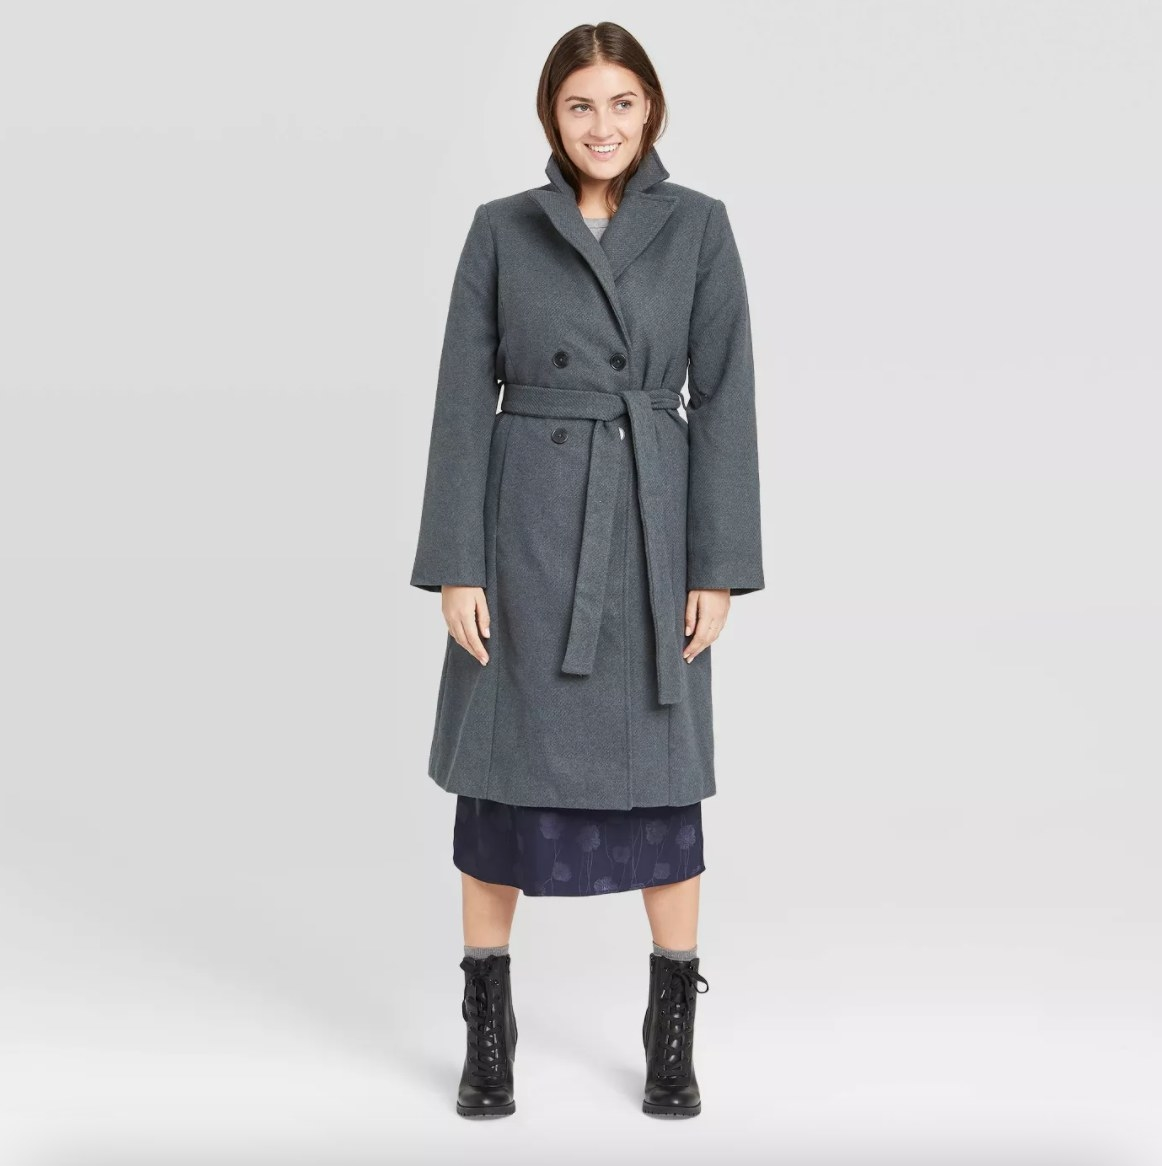 The coat on a model wearing a dark blue dress and lace-up black booties